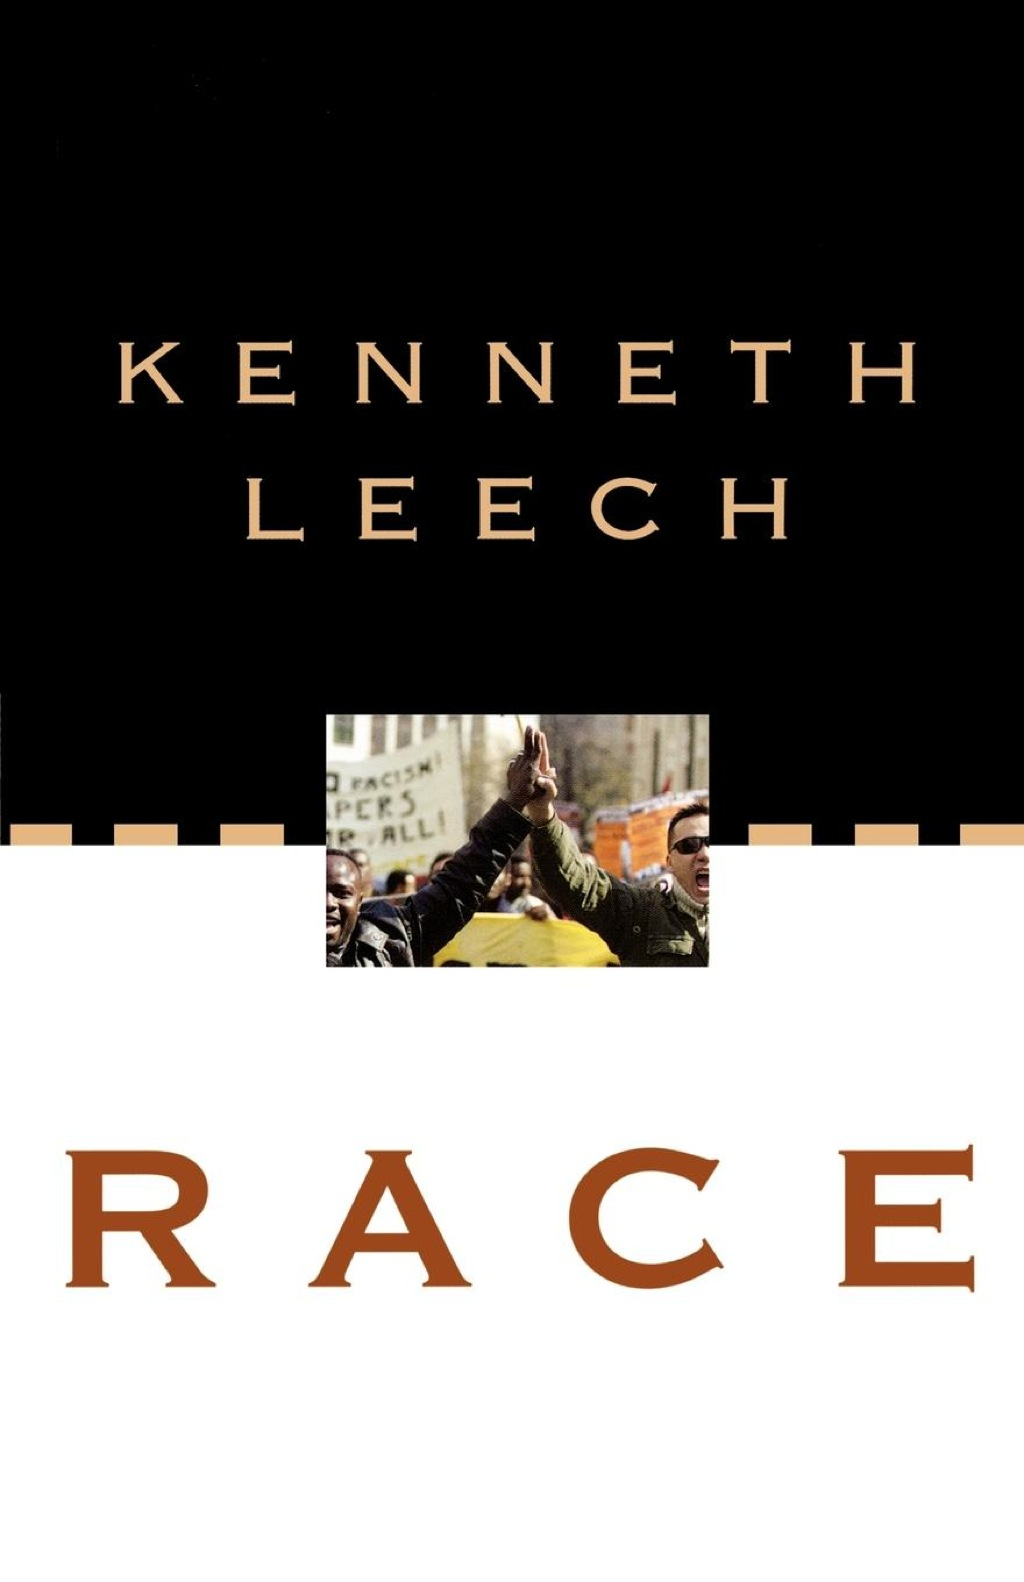 By Kenneth Leech PRINTISBN: 9780898694956 E-TEXT ISBN: 9780898697810 Edition: 0